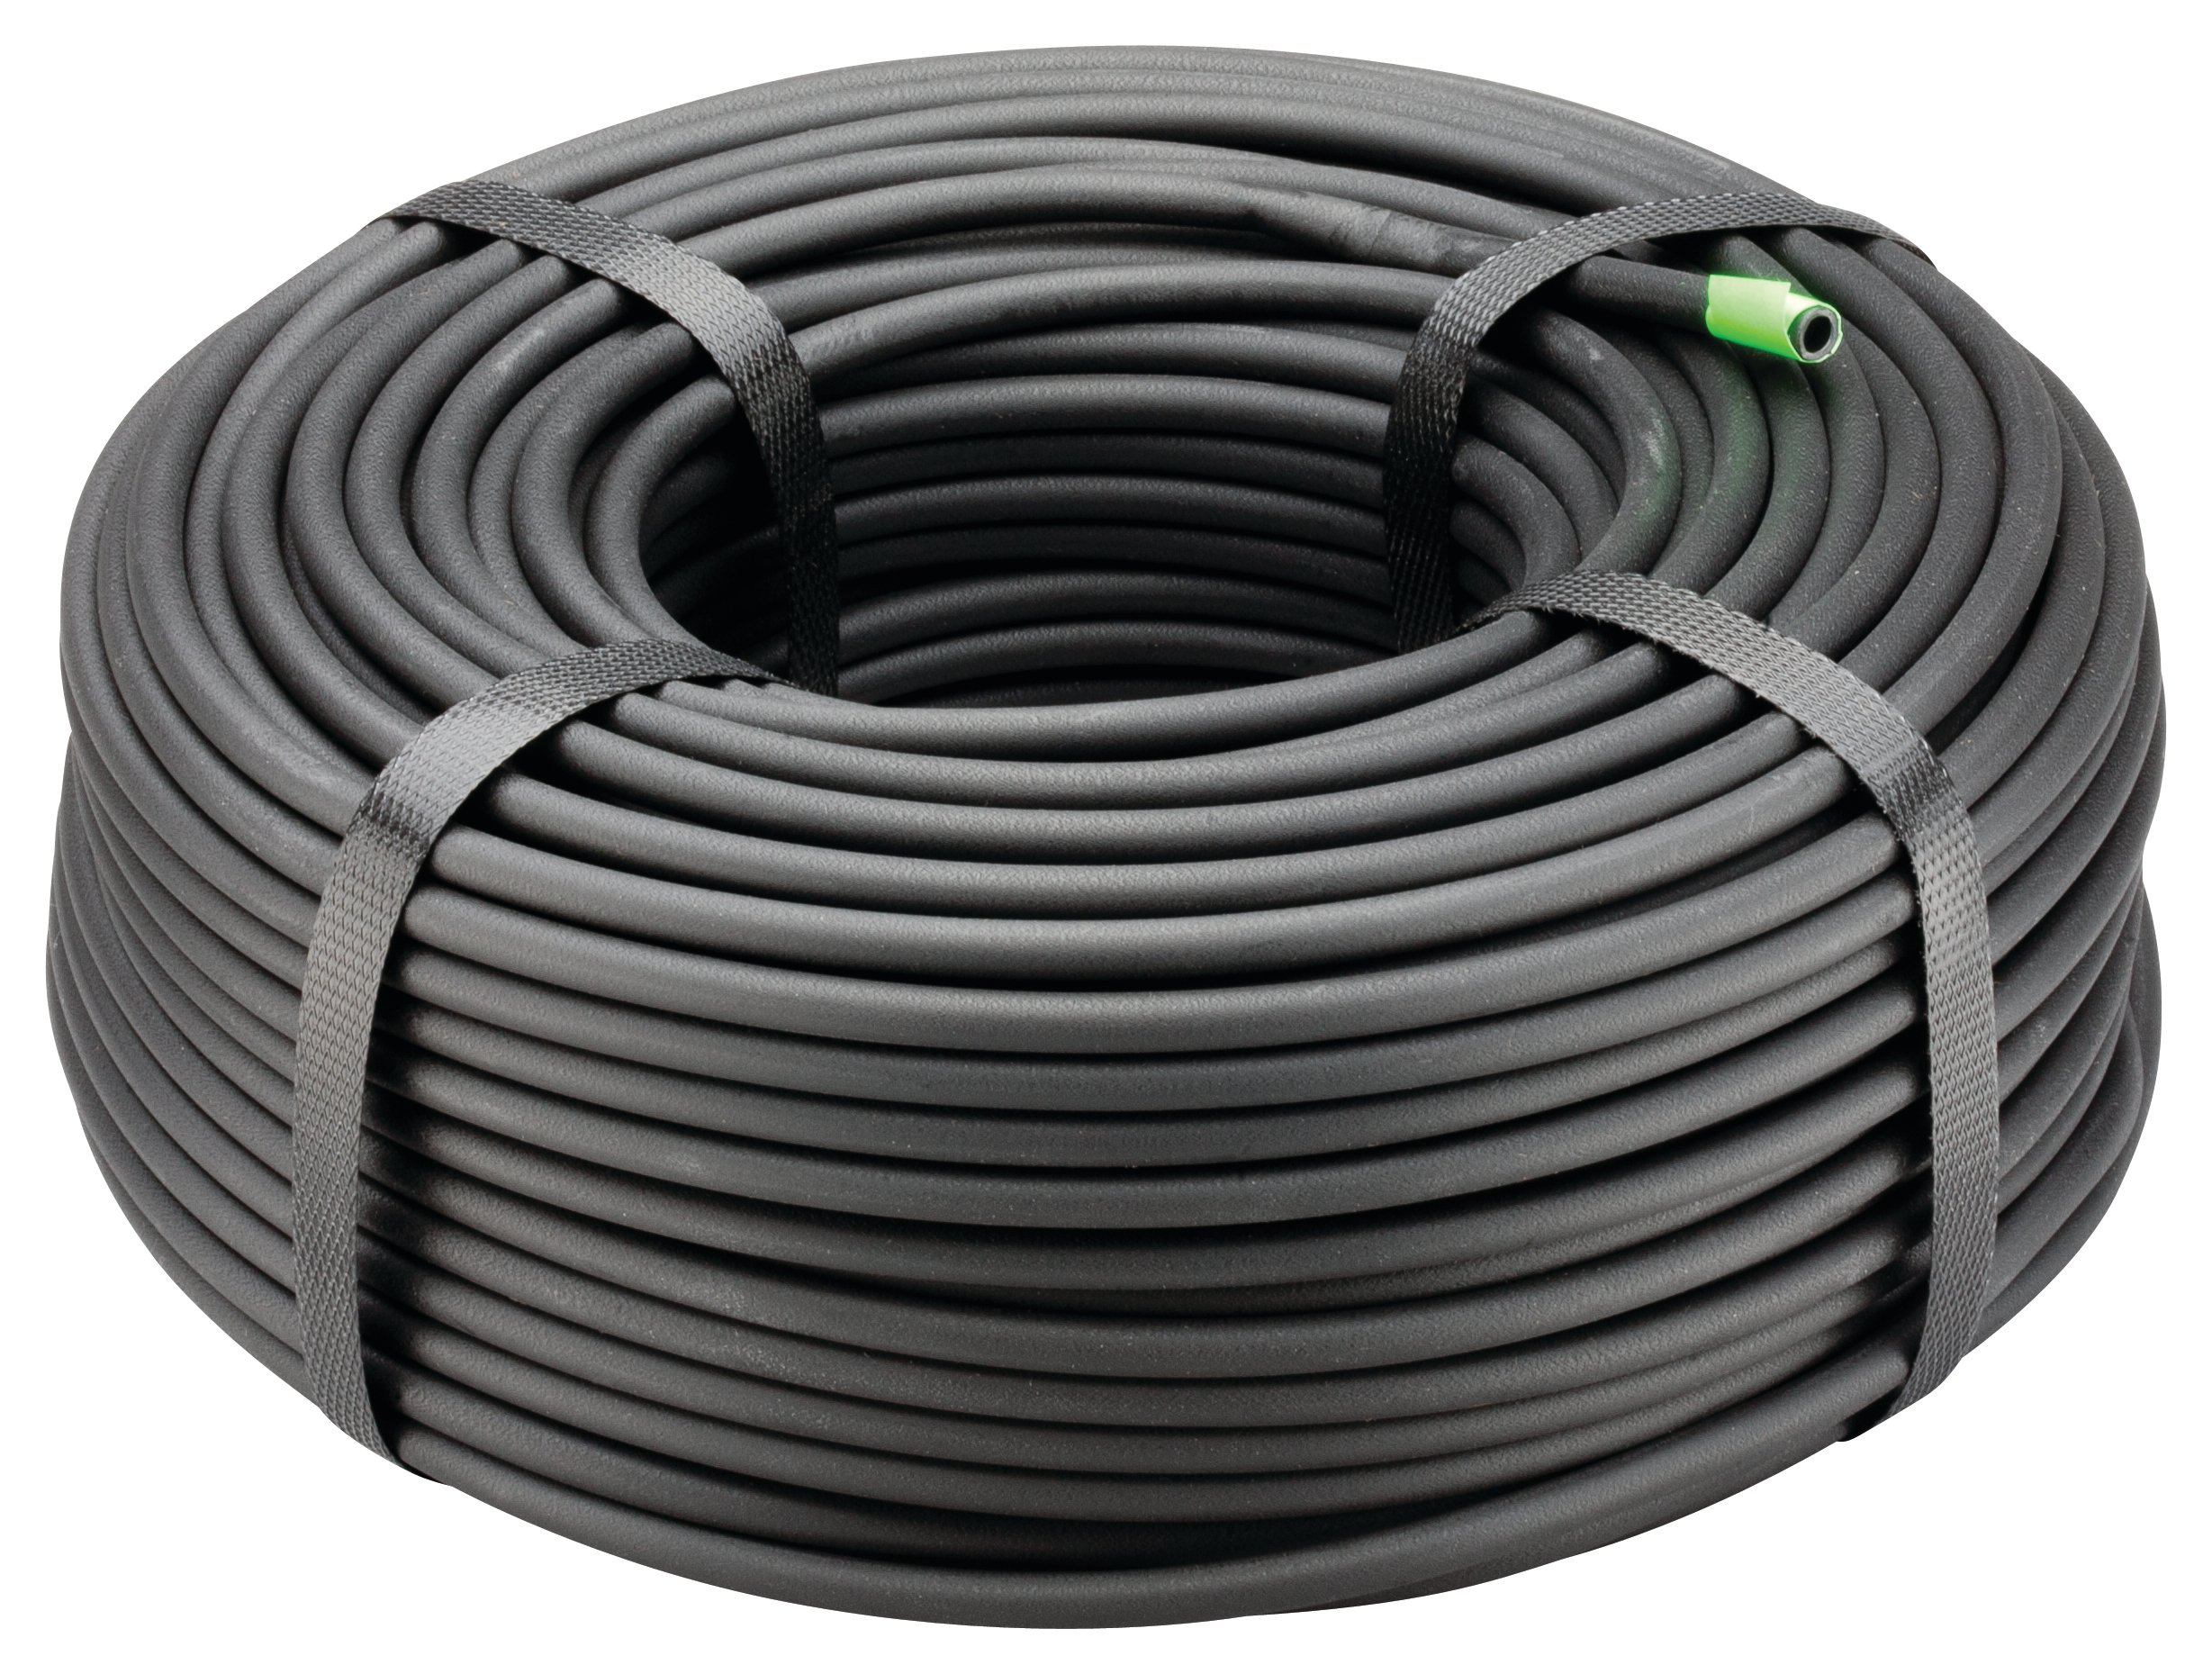 Rain Bird T22-250S Drip Irrigation 1/4'' Blank Distribution Tubing, 250' Roll, Black by Rain Bird